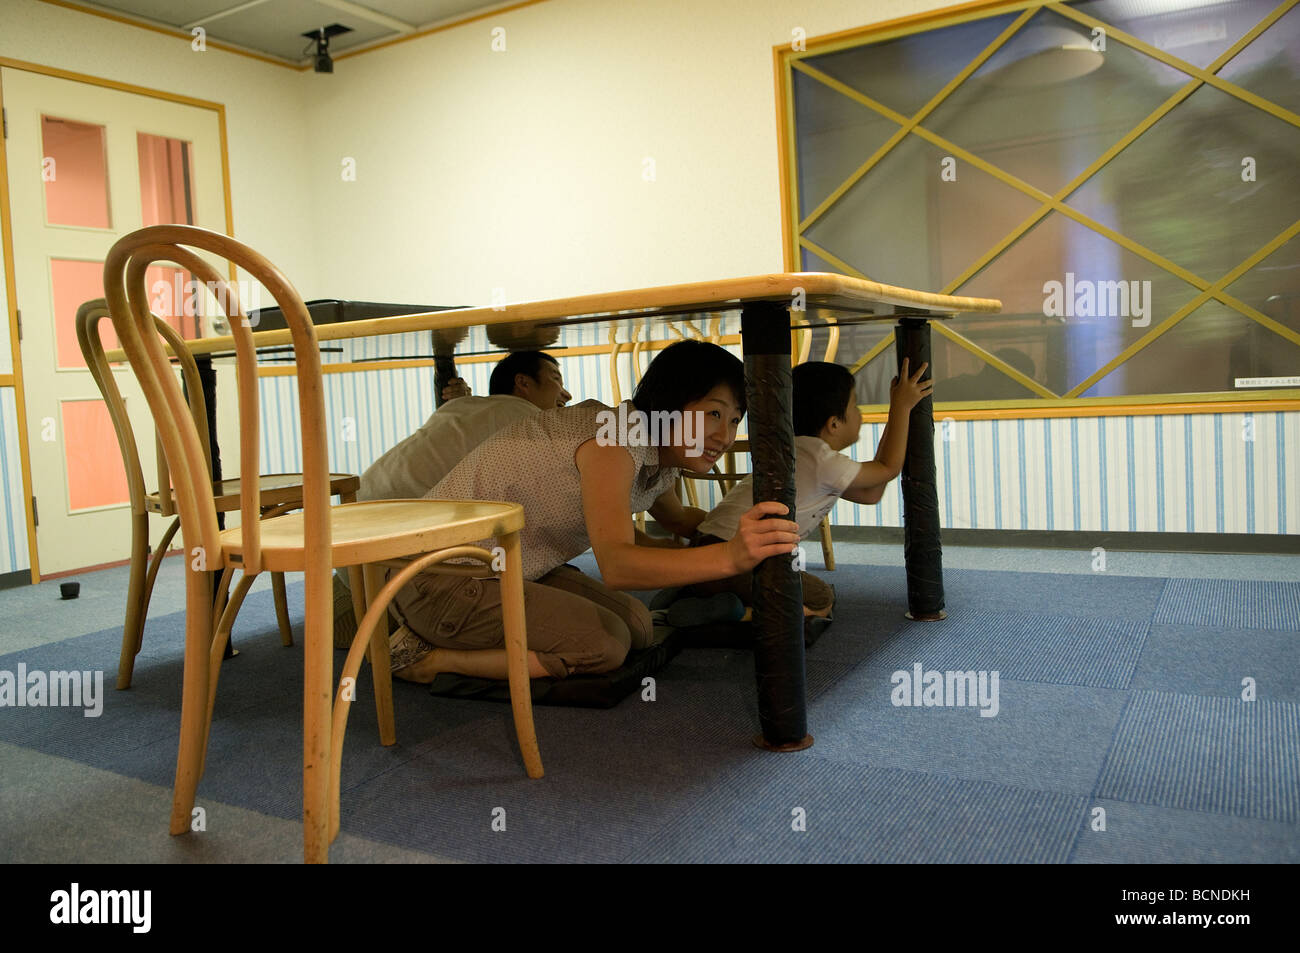 A Japanese family experience a computer-controlled earthquake at the Tokyo Earthquake Simulation Center of Ikebukuro - Stock Image